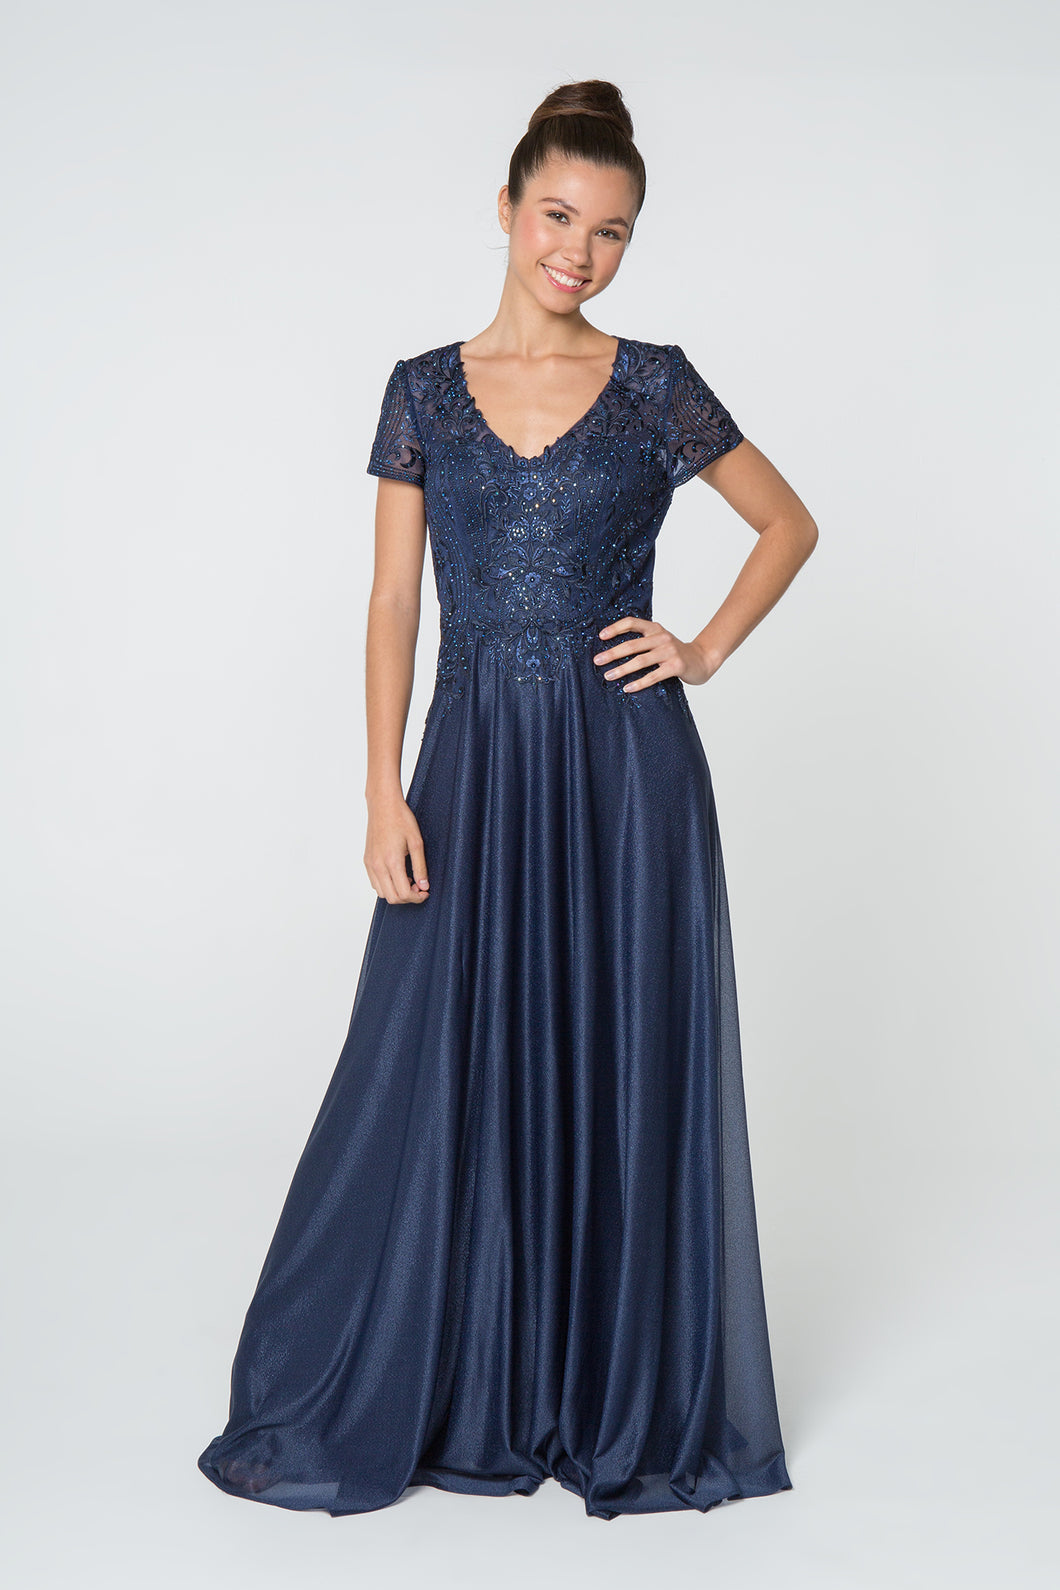 Faith Mothers Dress Short Sleeve Beaded Top Formal Floor Length Gown G2829-Navy SAMPLE IN STORE